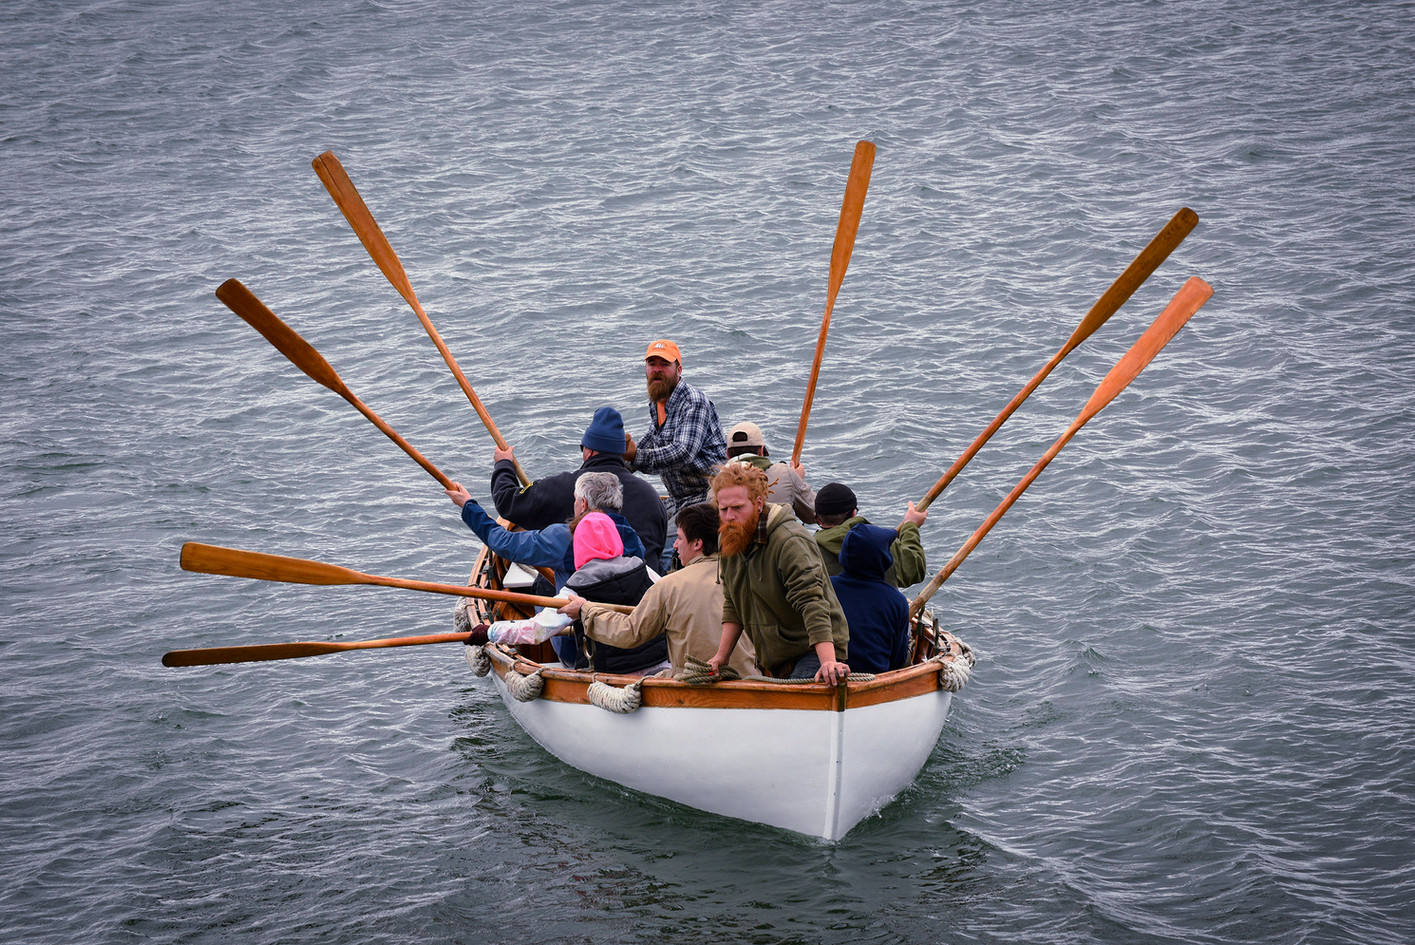 Rowing ashore to stretch our legs in an island village Photo: Marvin Moriarty